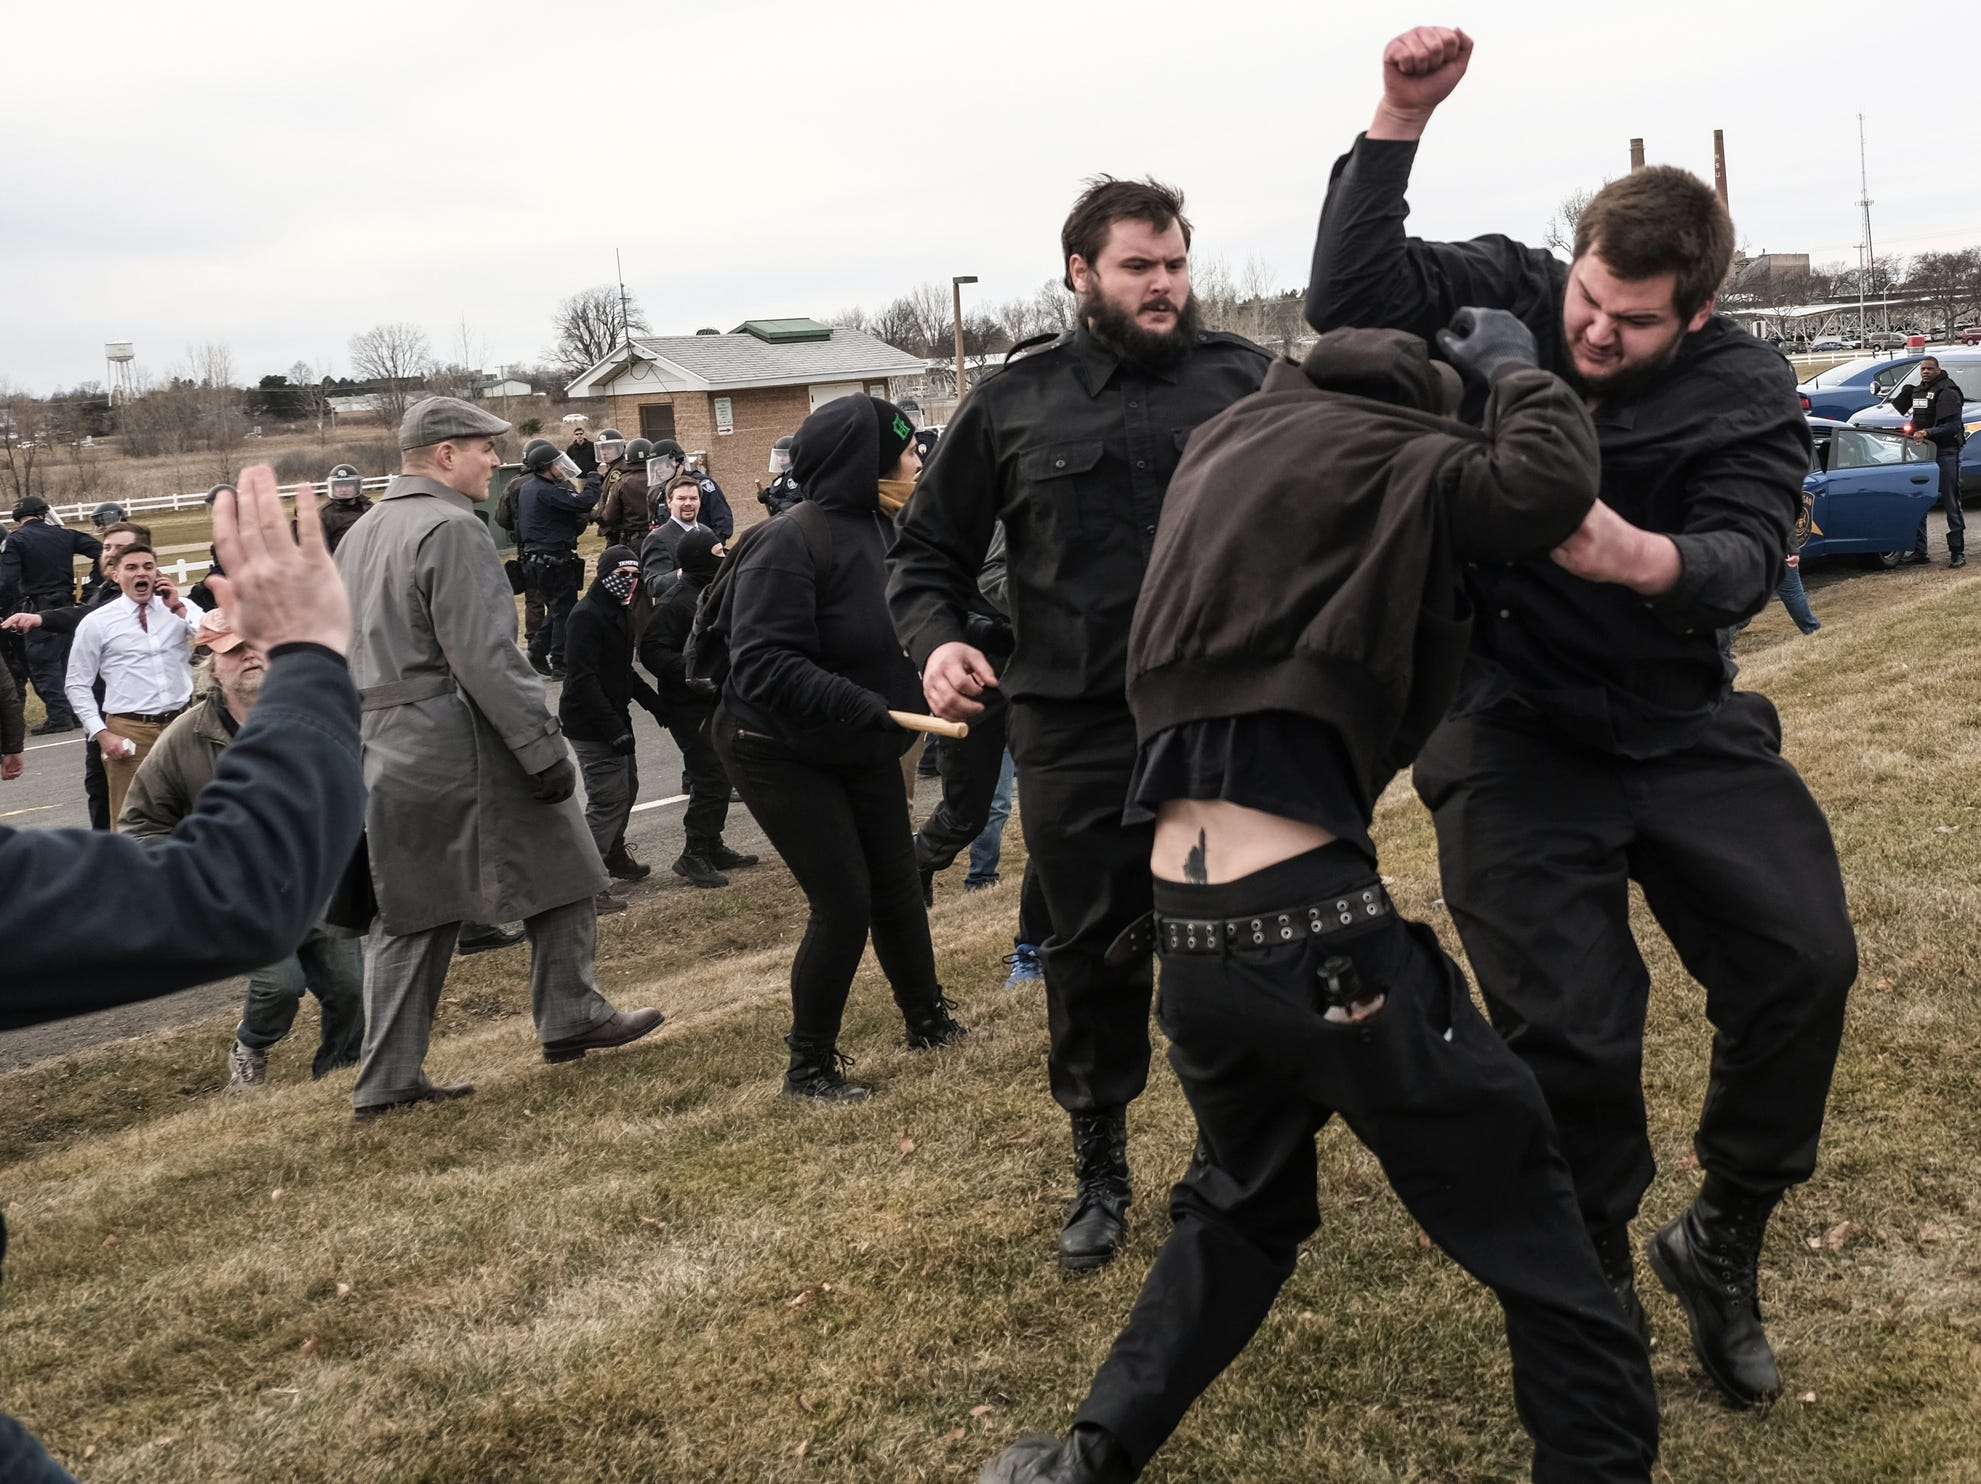 March 5, 2018: Protestors and supporters of Richard Spencer clash outside of the MSU Pavilion for Agriculture and Livestock Education on the Michigan State University campus.